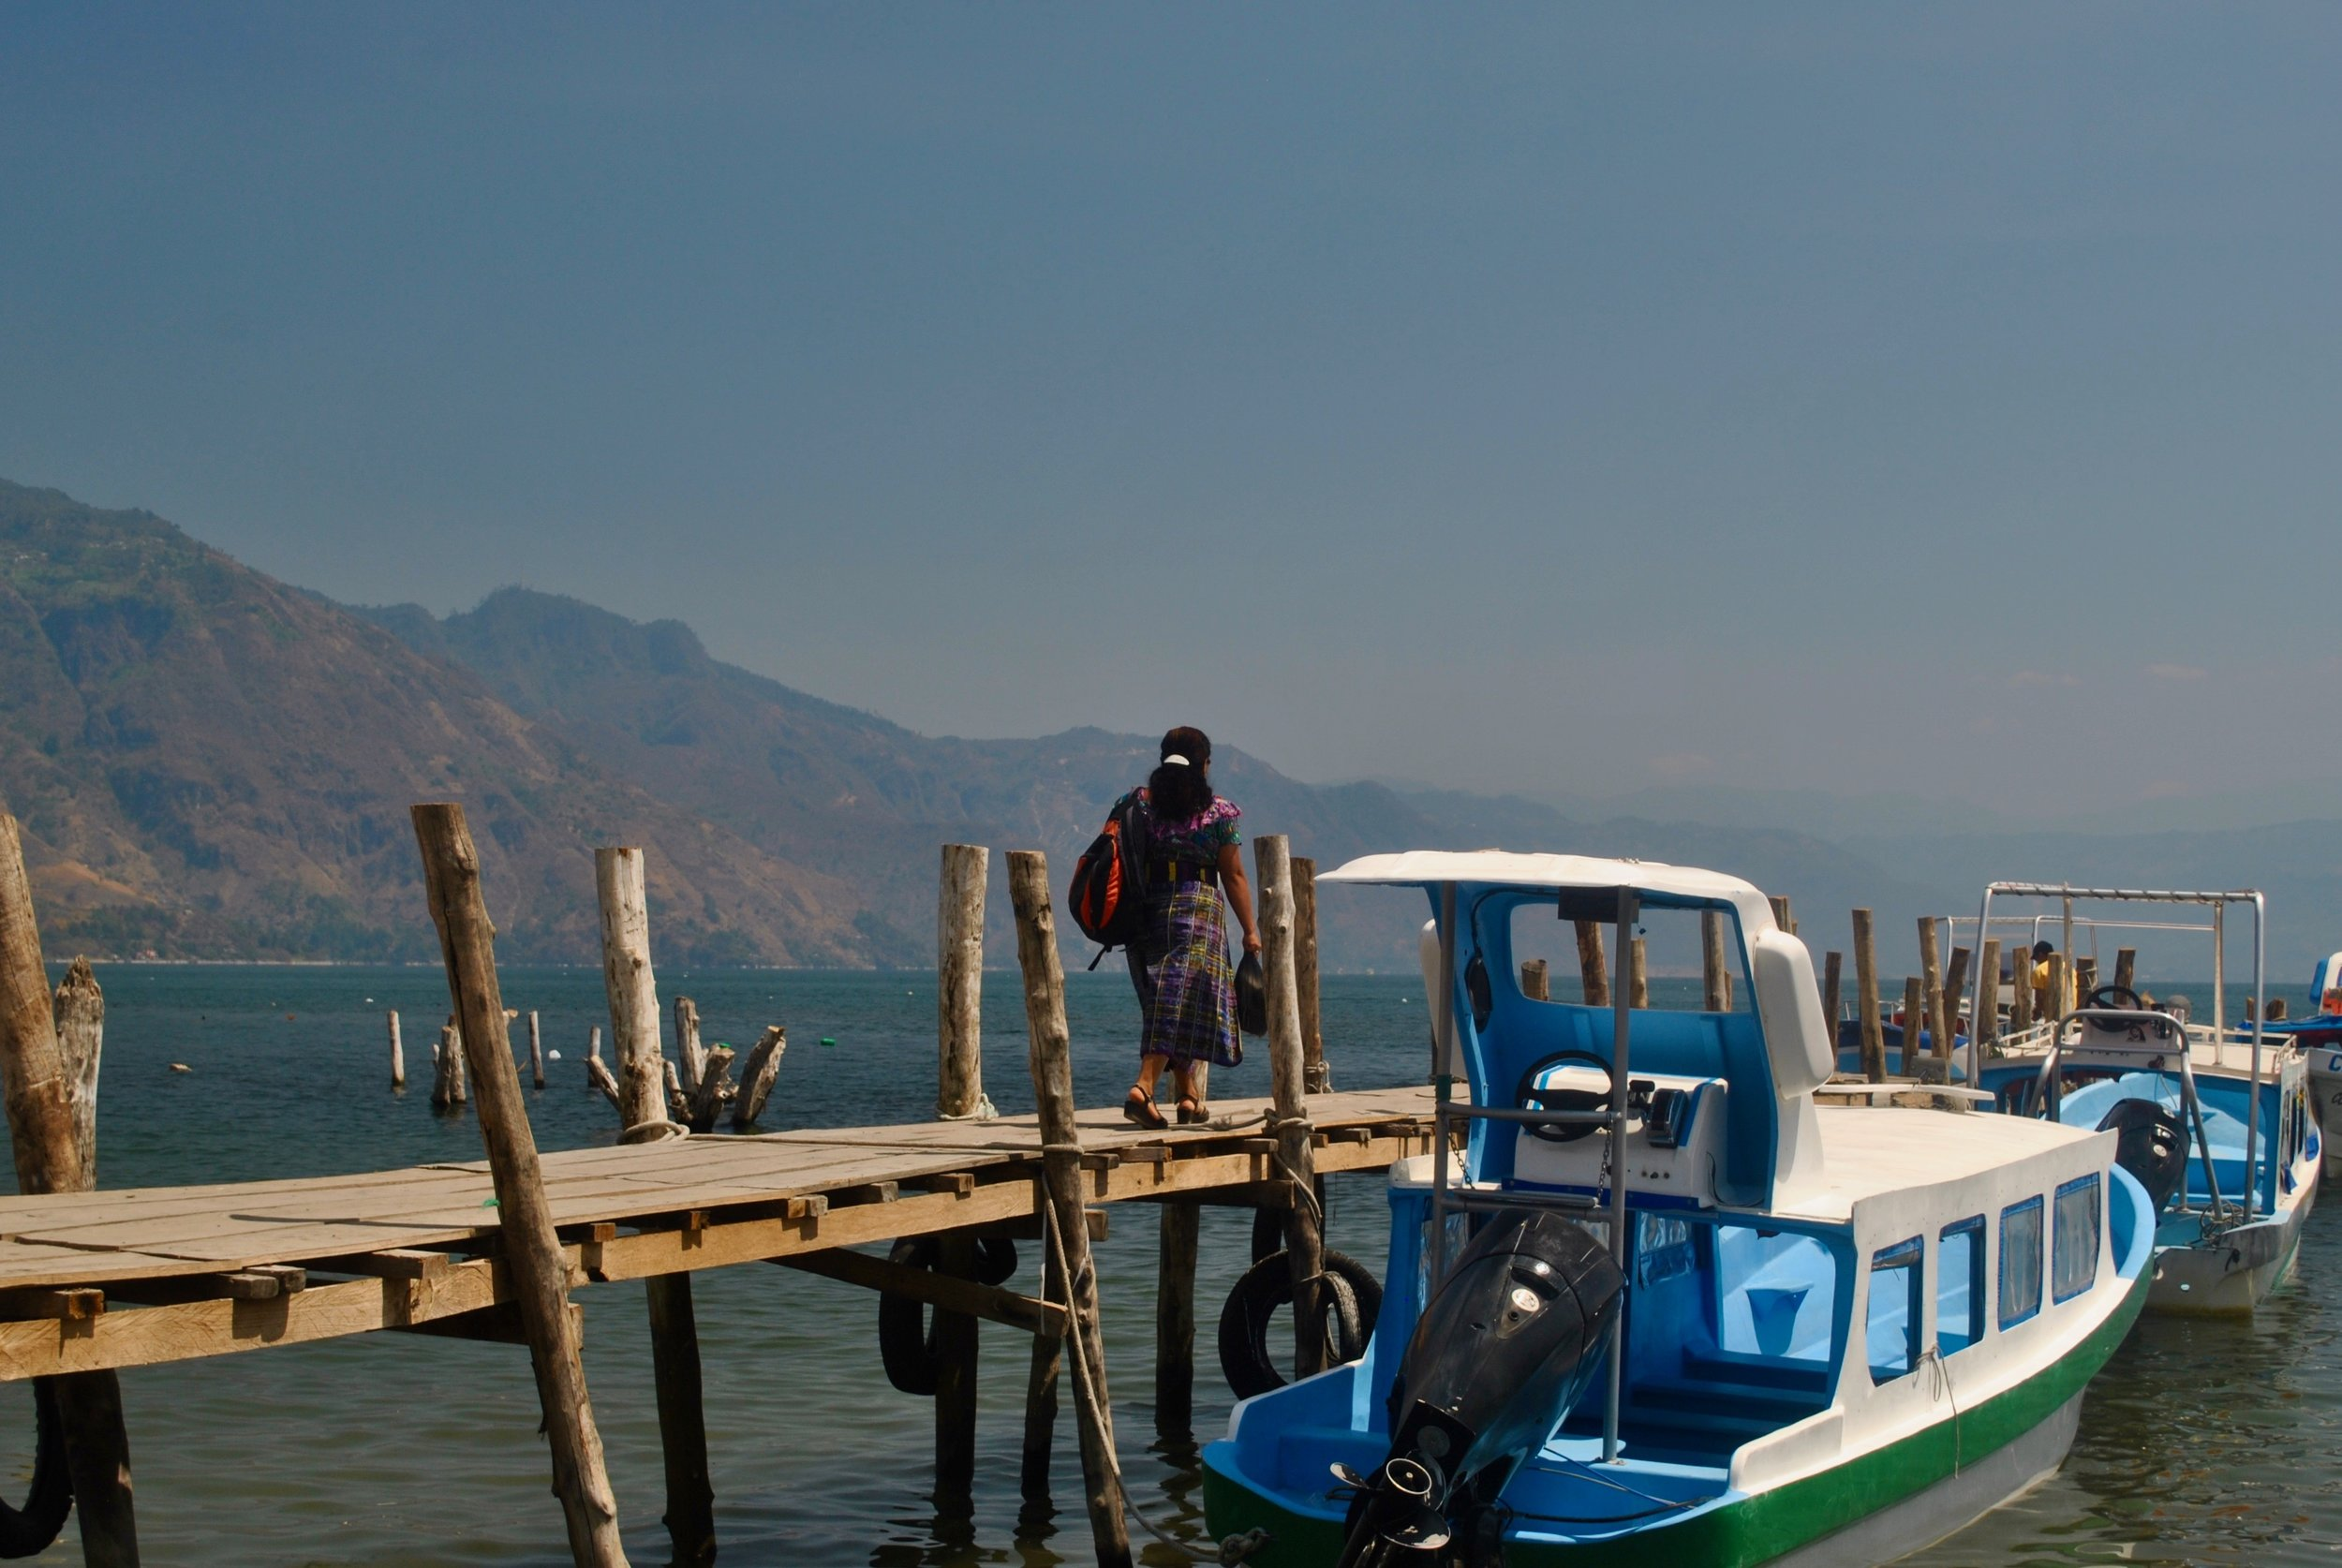 Local preparing to board the shuttle boat at Lake Atitlan in Santiago.